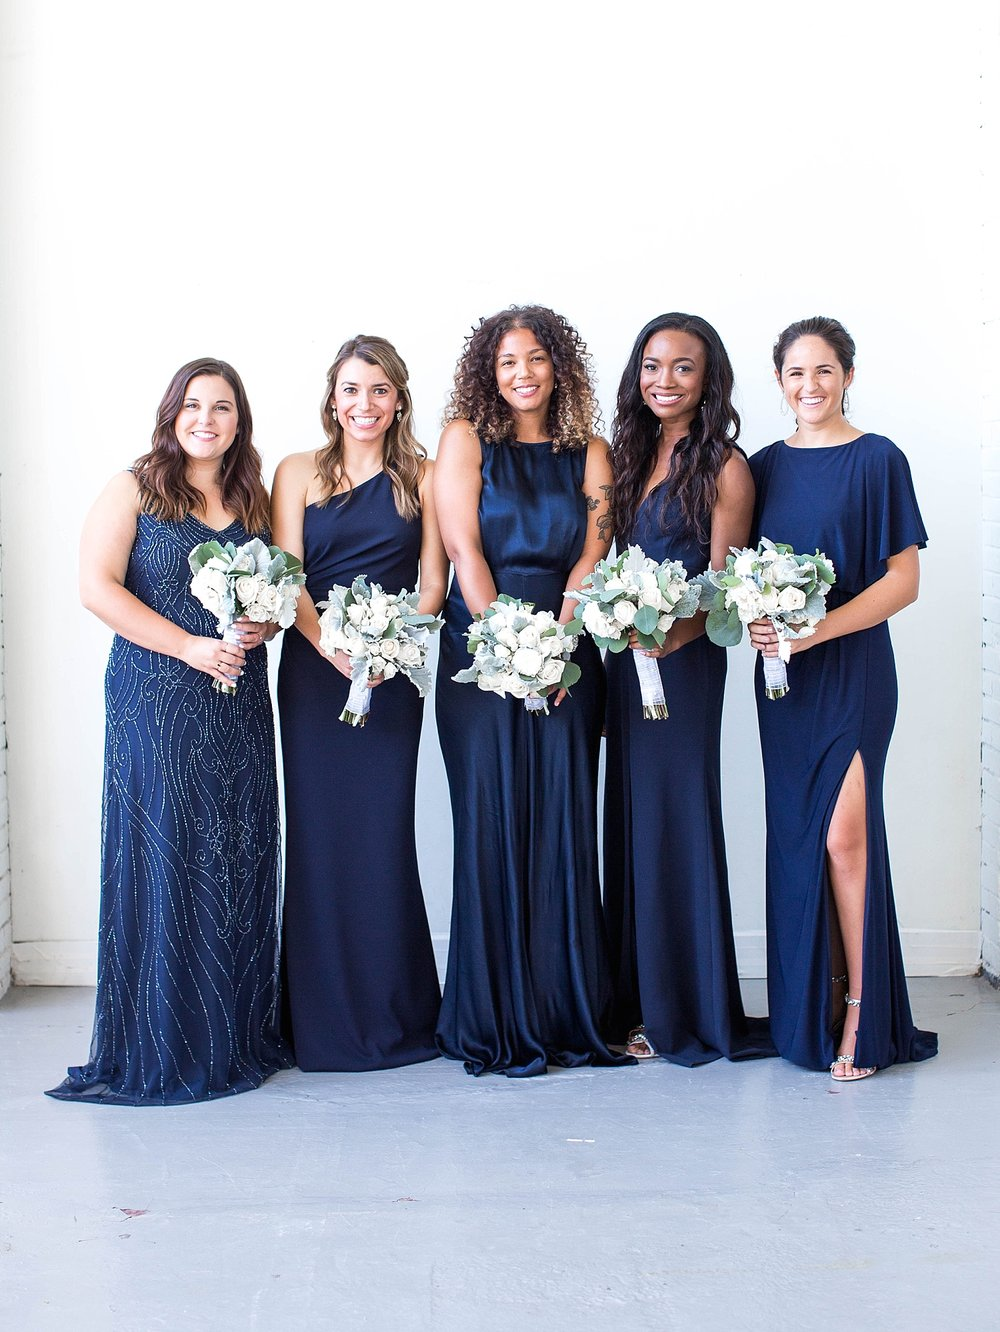 BHLDN Bridesmaids Dresses Campaign Philadelphia New Jersey Wedding Fashion Photography by Kelee Bovelle_0016.jpg